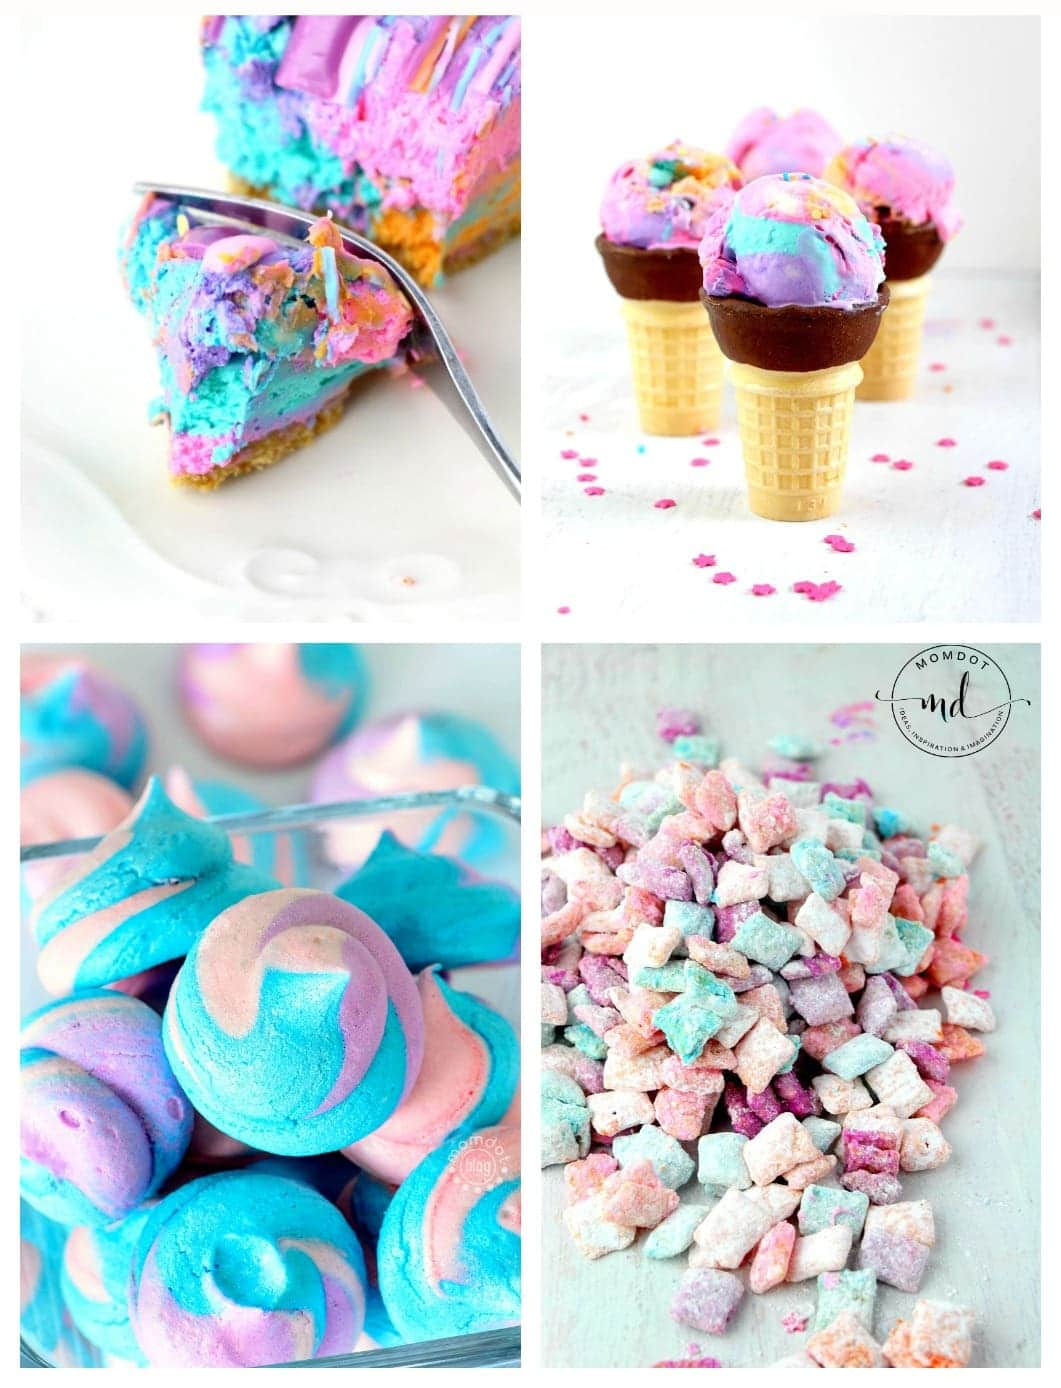 5 Unicorn Poop Desserts that will change your life and make your next party pretty!